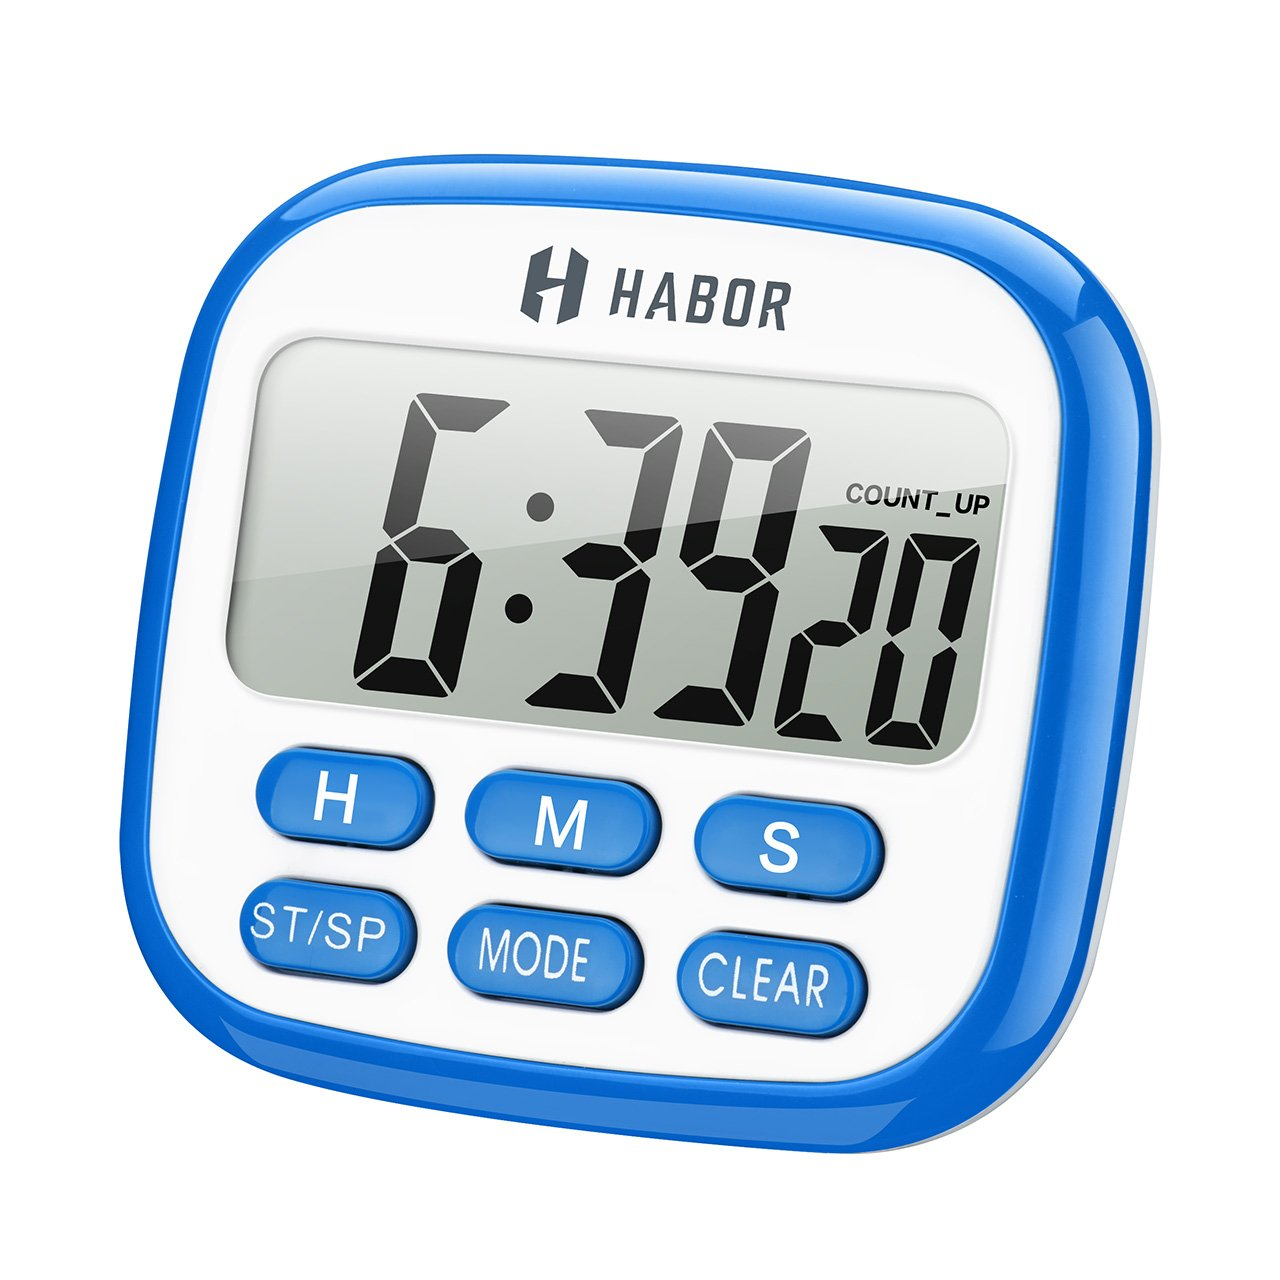 Kitchen Timer Icon - Habor digital kitchen timer multifunction super large lcd display loud alarm with magnetic backing stand